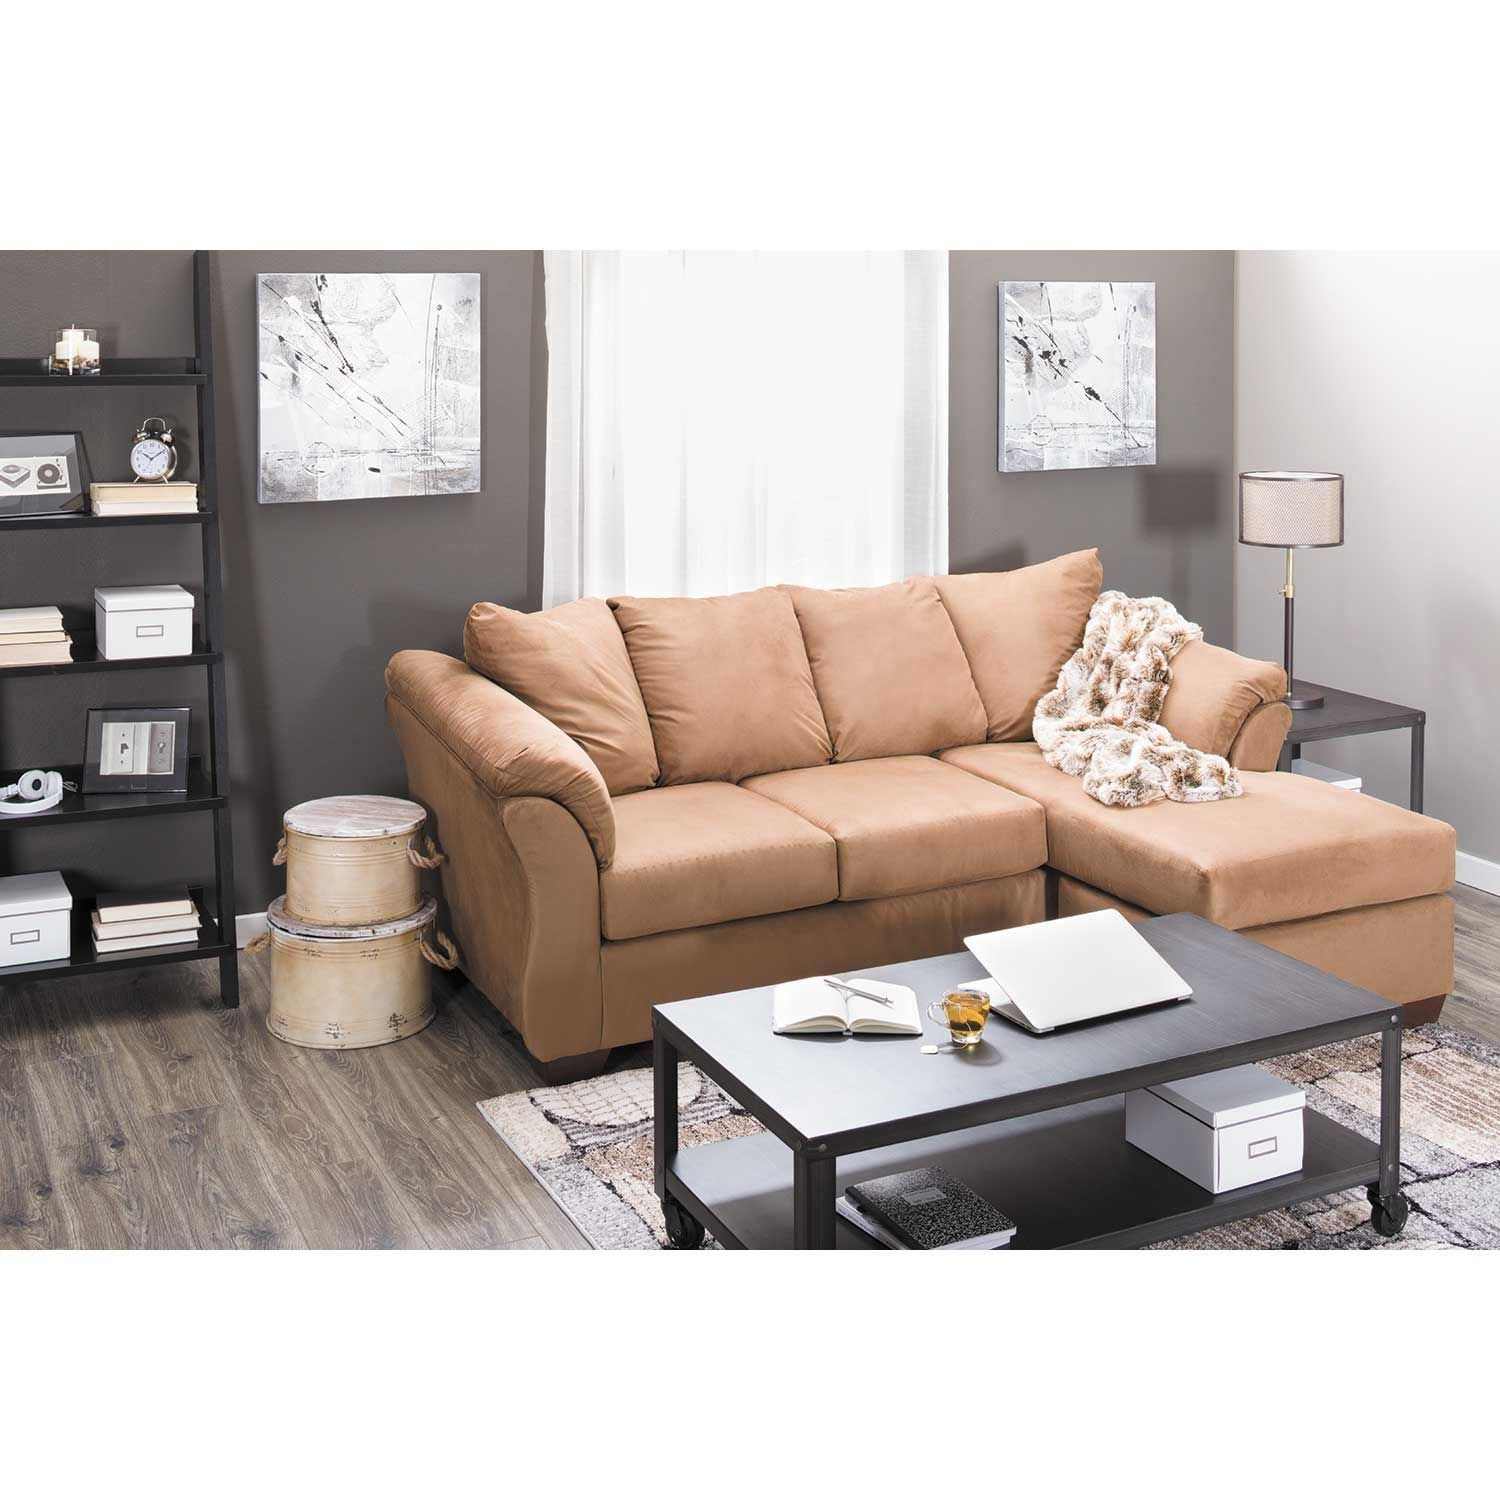 Sectional Sofa Couch Reversible Chaise Ottoman Furniture: Cocoa Reversible Sofa Chaise V1-750SC